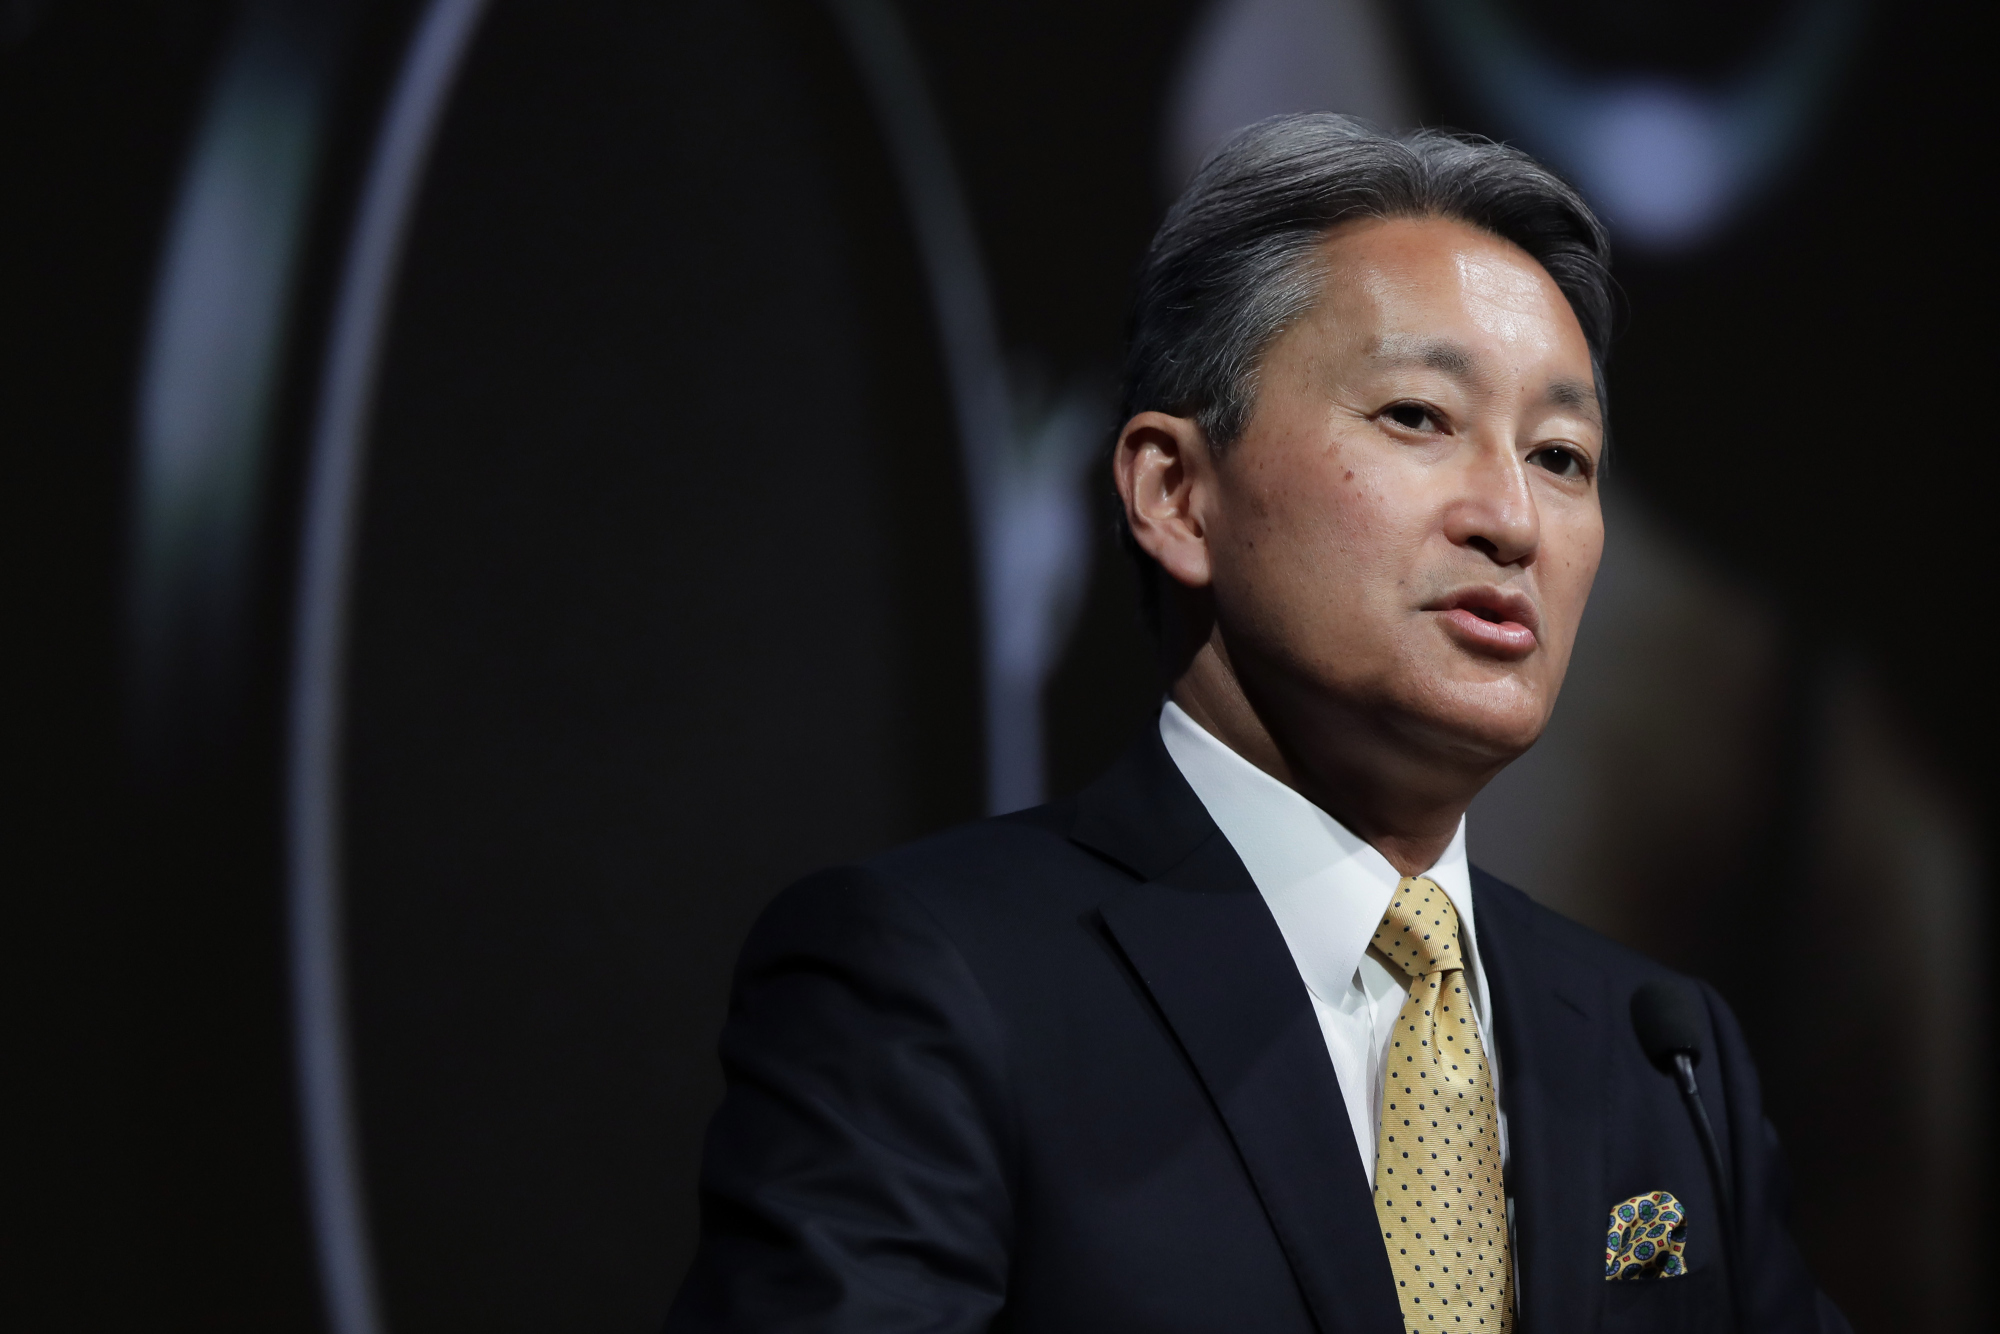 Kazuo Hirai, president and chief executive officer of Sony Corp., speaks during a news conference in Tokyo, Japan, on Tuesday, May 23, 2017.  Photographer: Kiyoshi Ota/Bloomberg